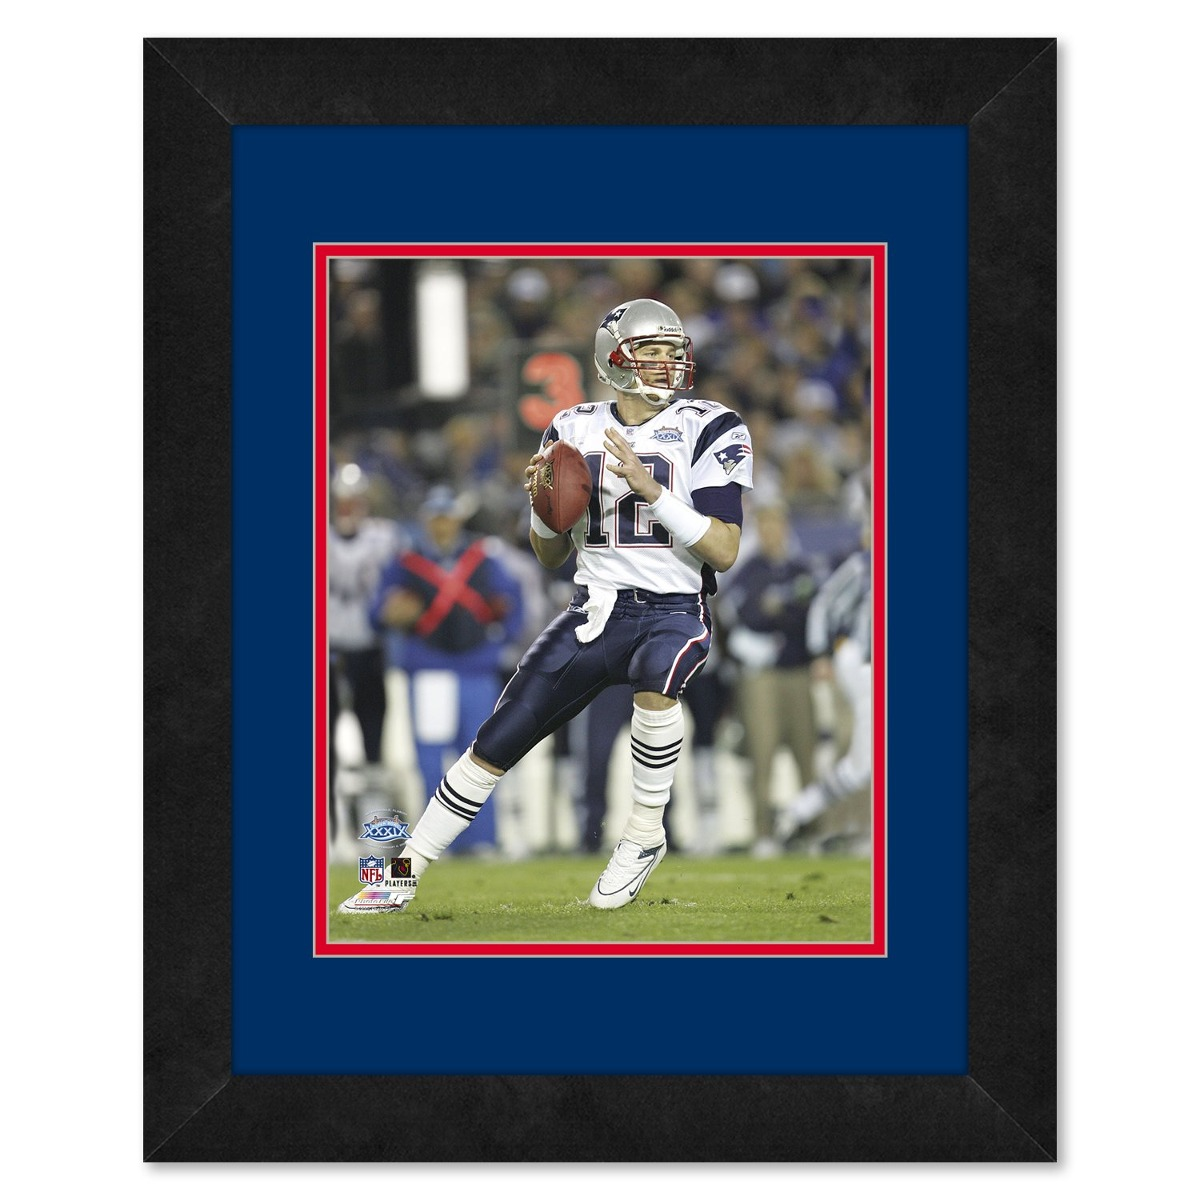 Nfl New England Patriots Team Color Mats / Marco De Imagen ...